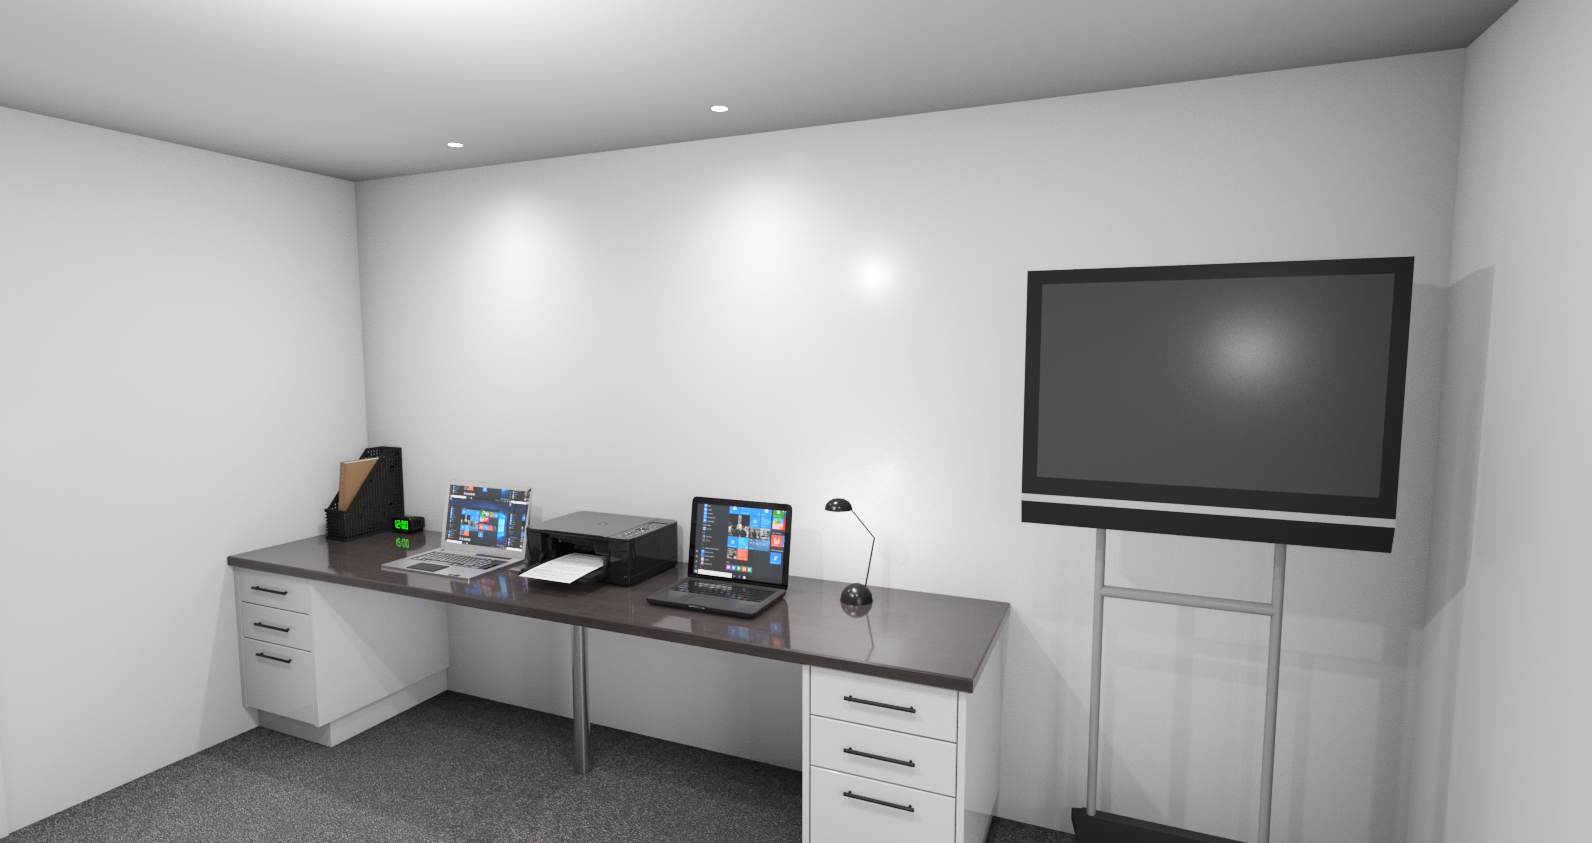 Home office 3D render with double work desks